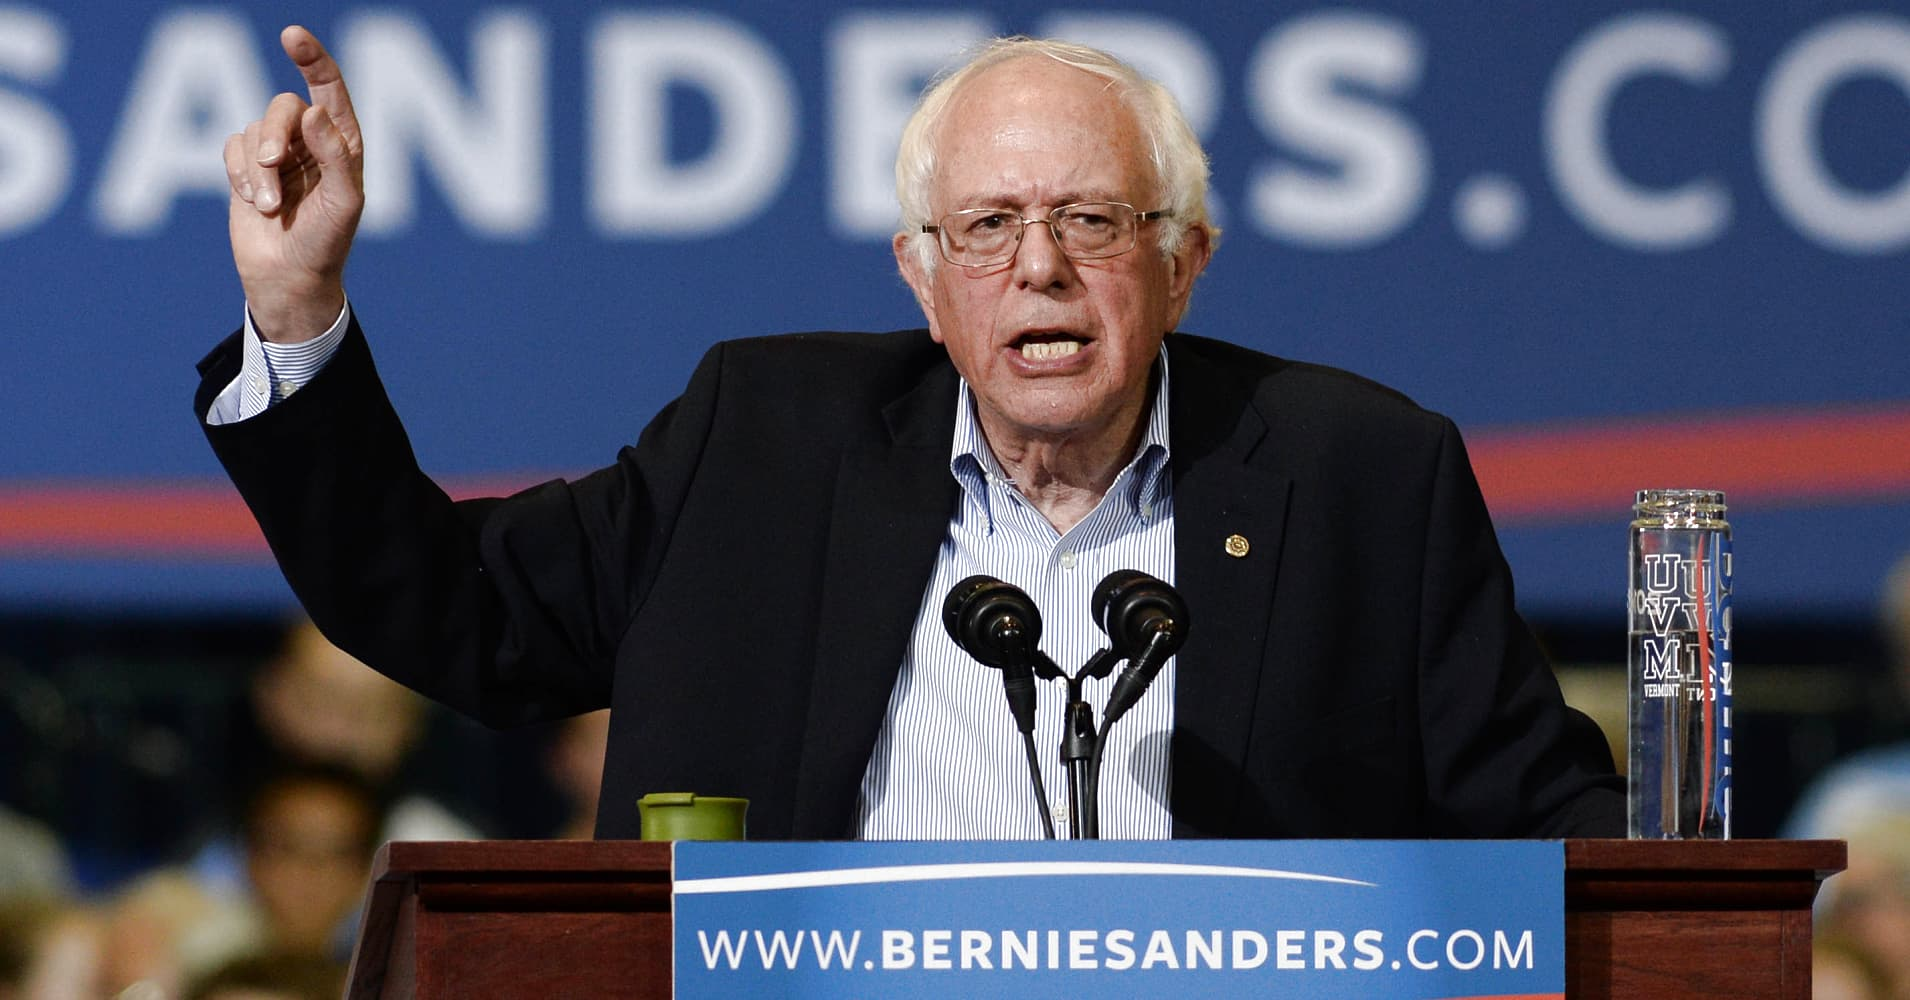 Bernie Sanders is running for president — and his policies would have a huge impact on business